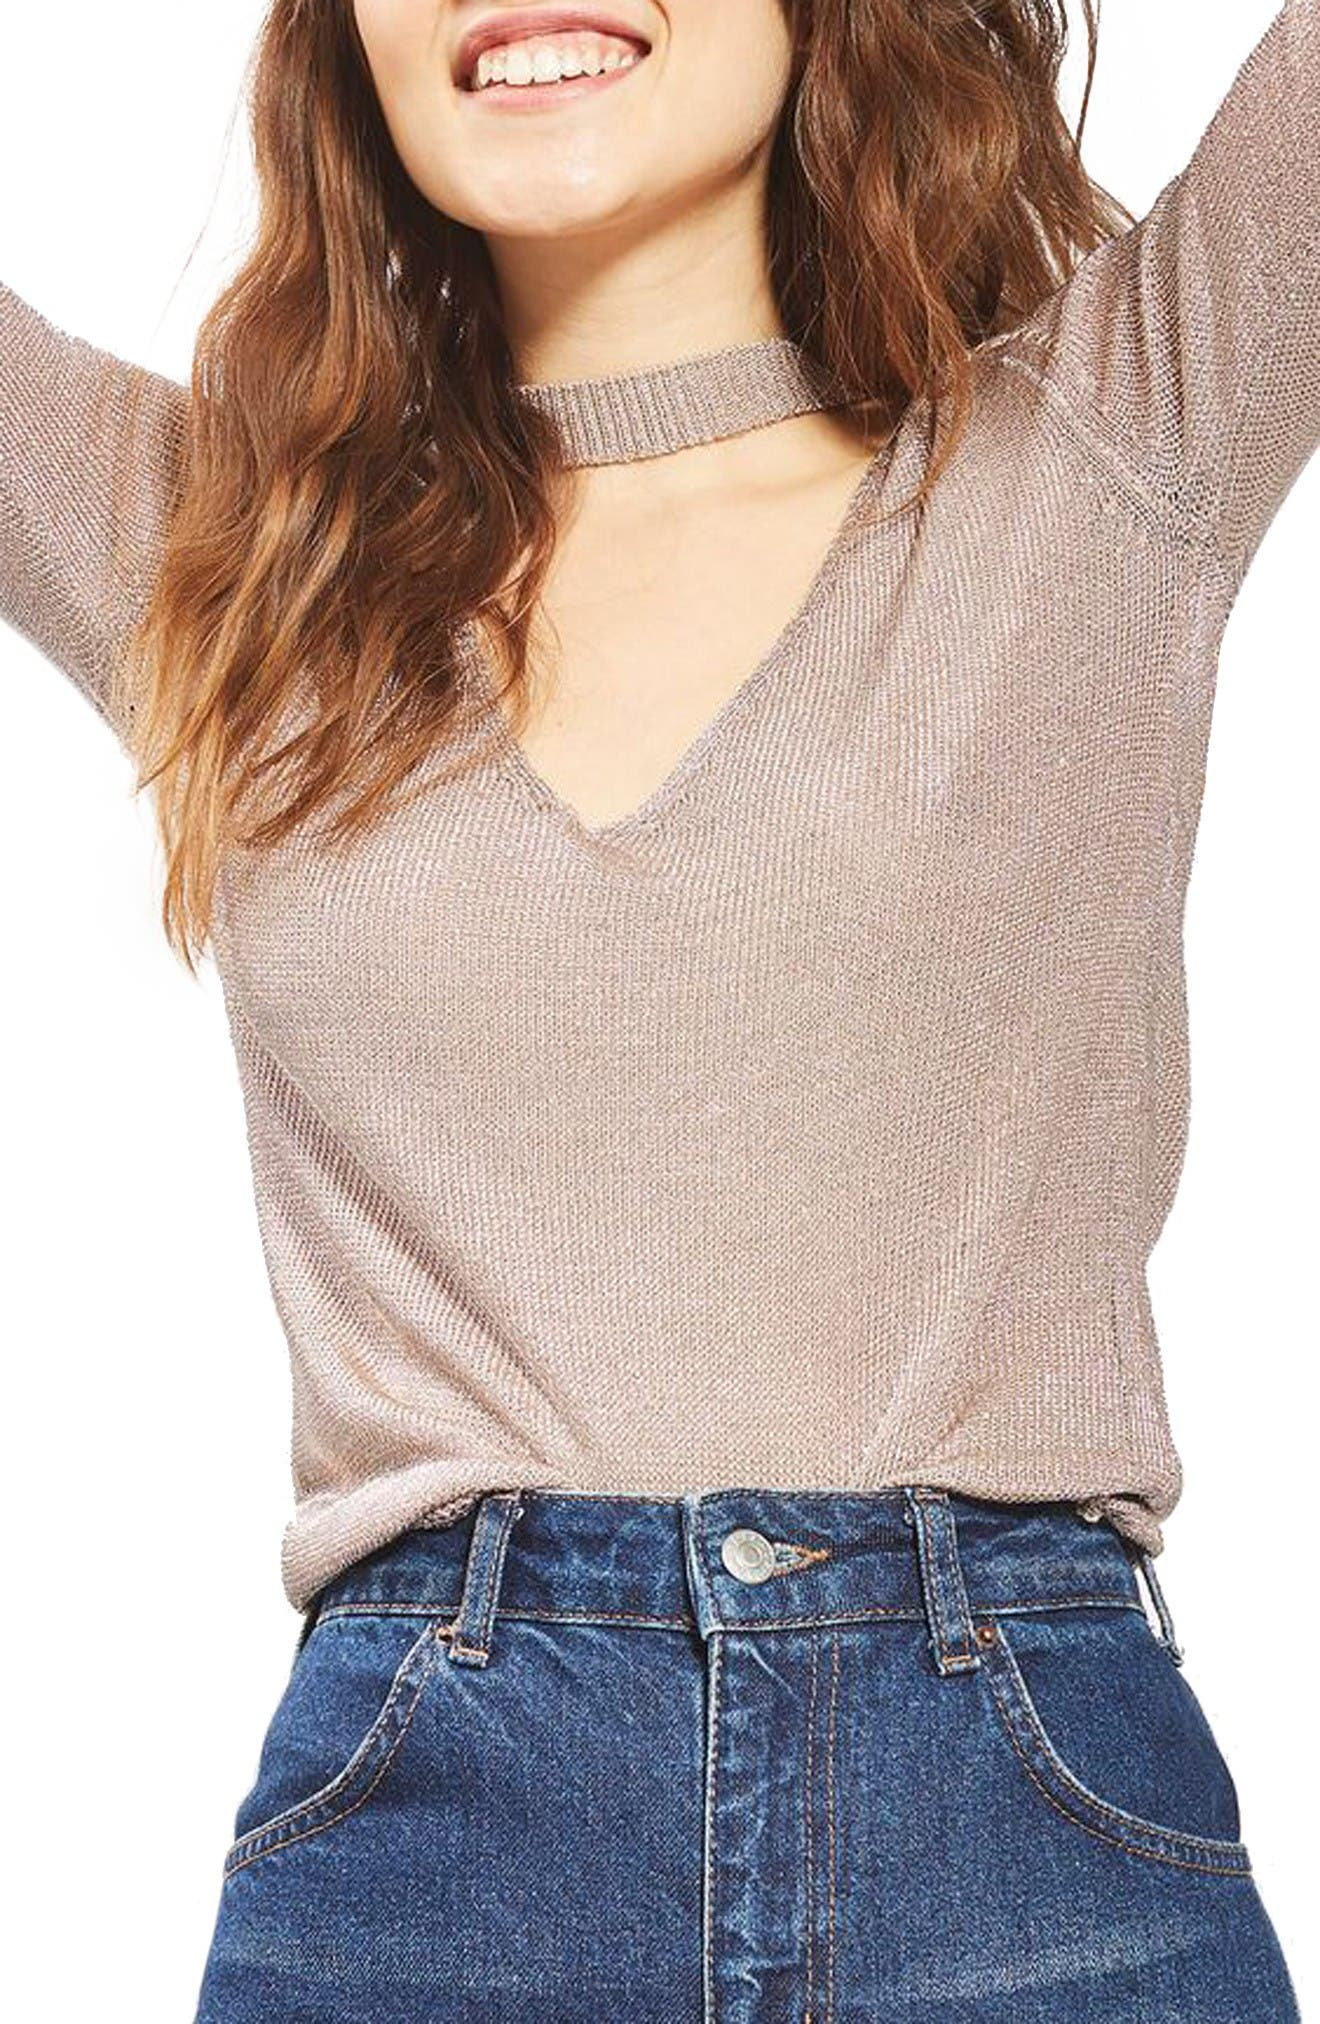 Main Image - Topshop Metallic Choker Top